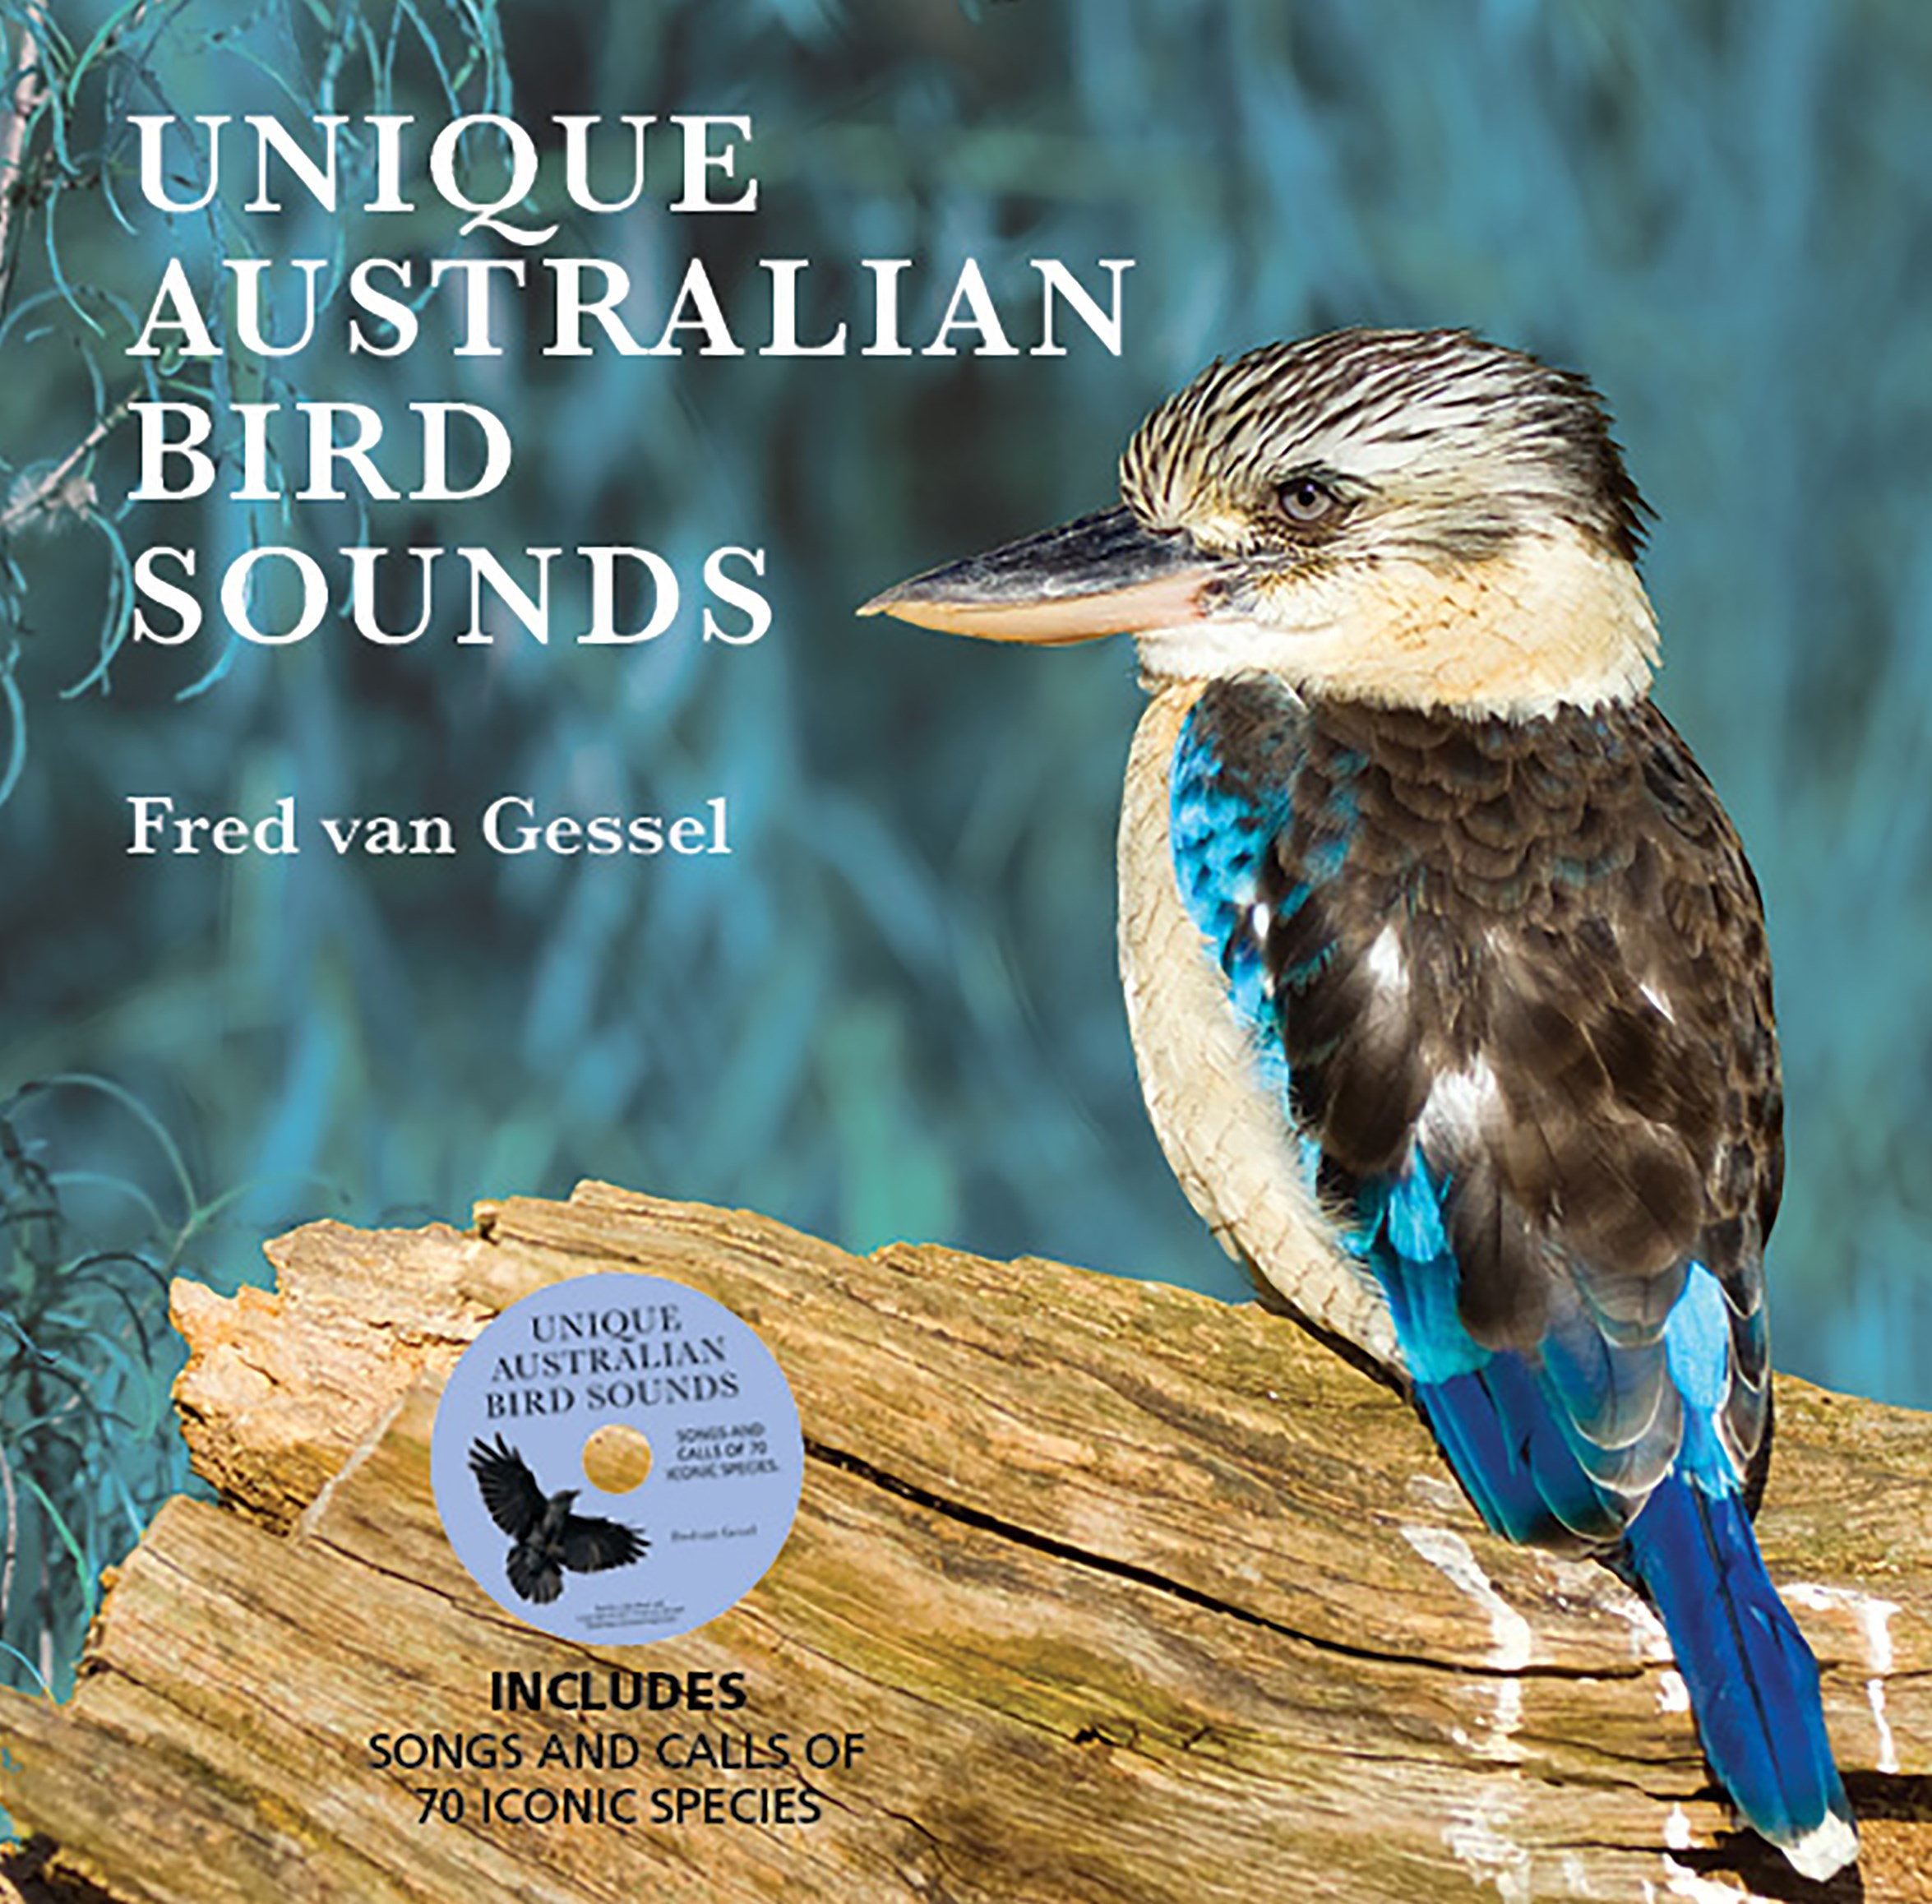 Unique Australian Bird Sounds